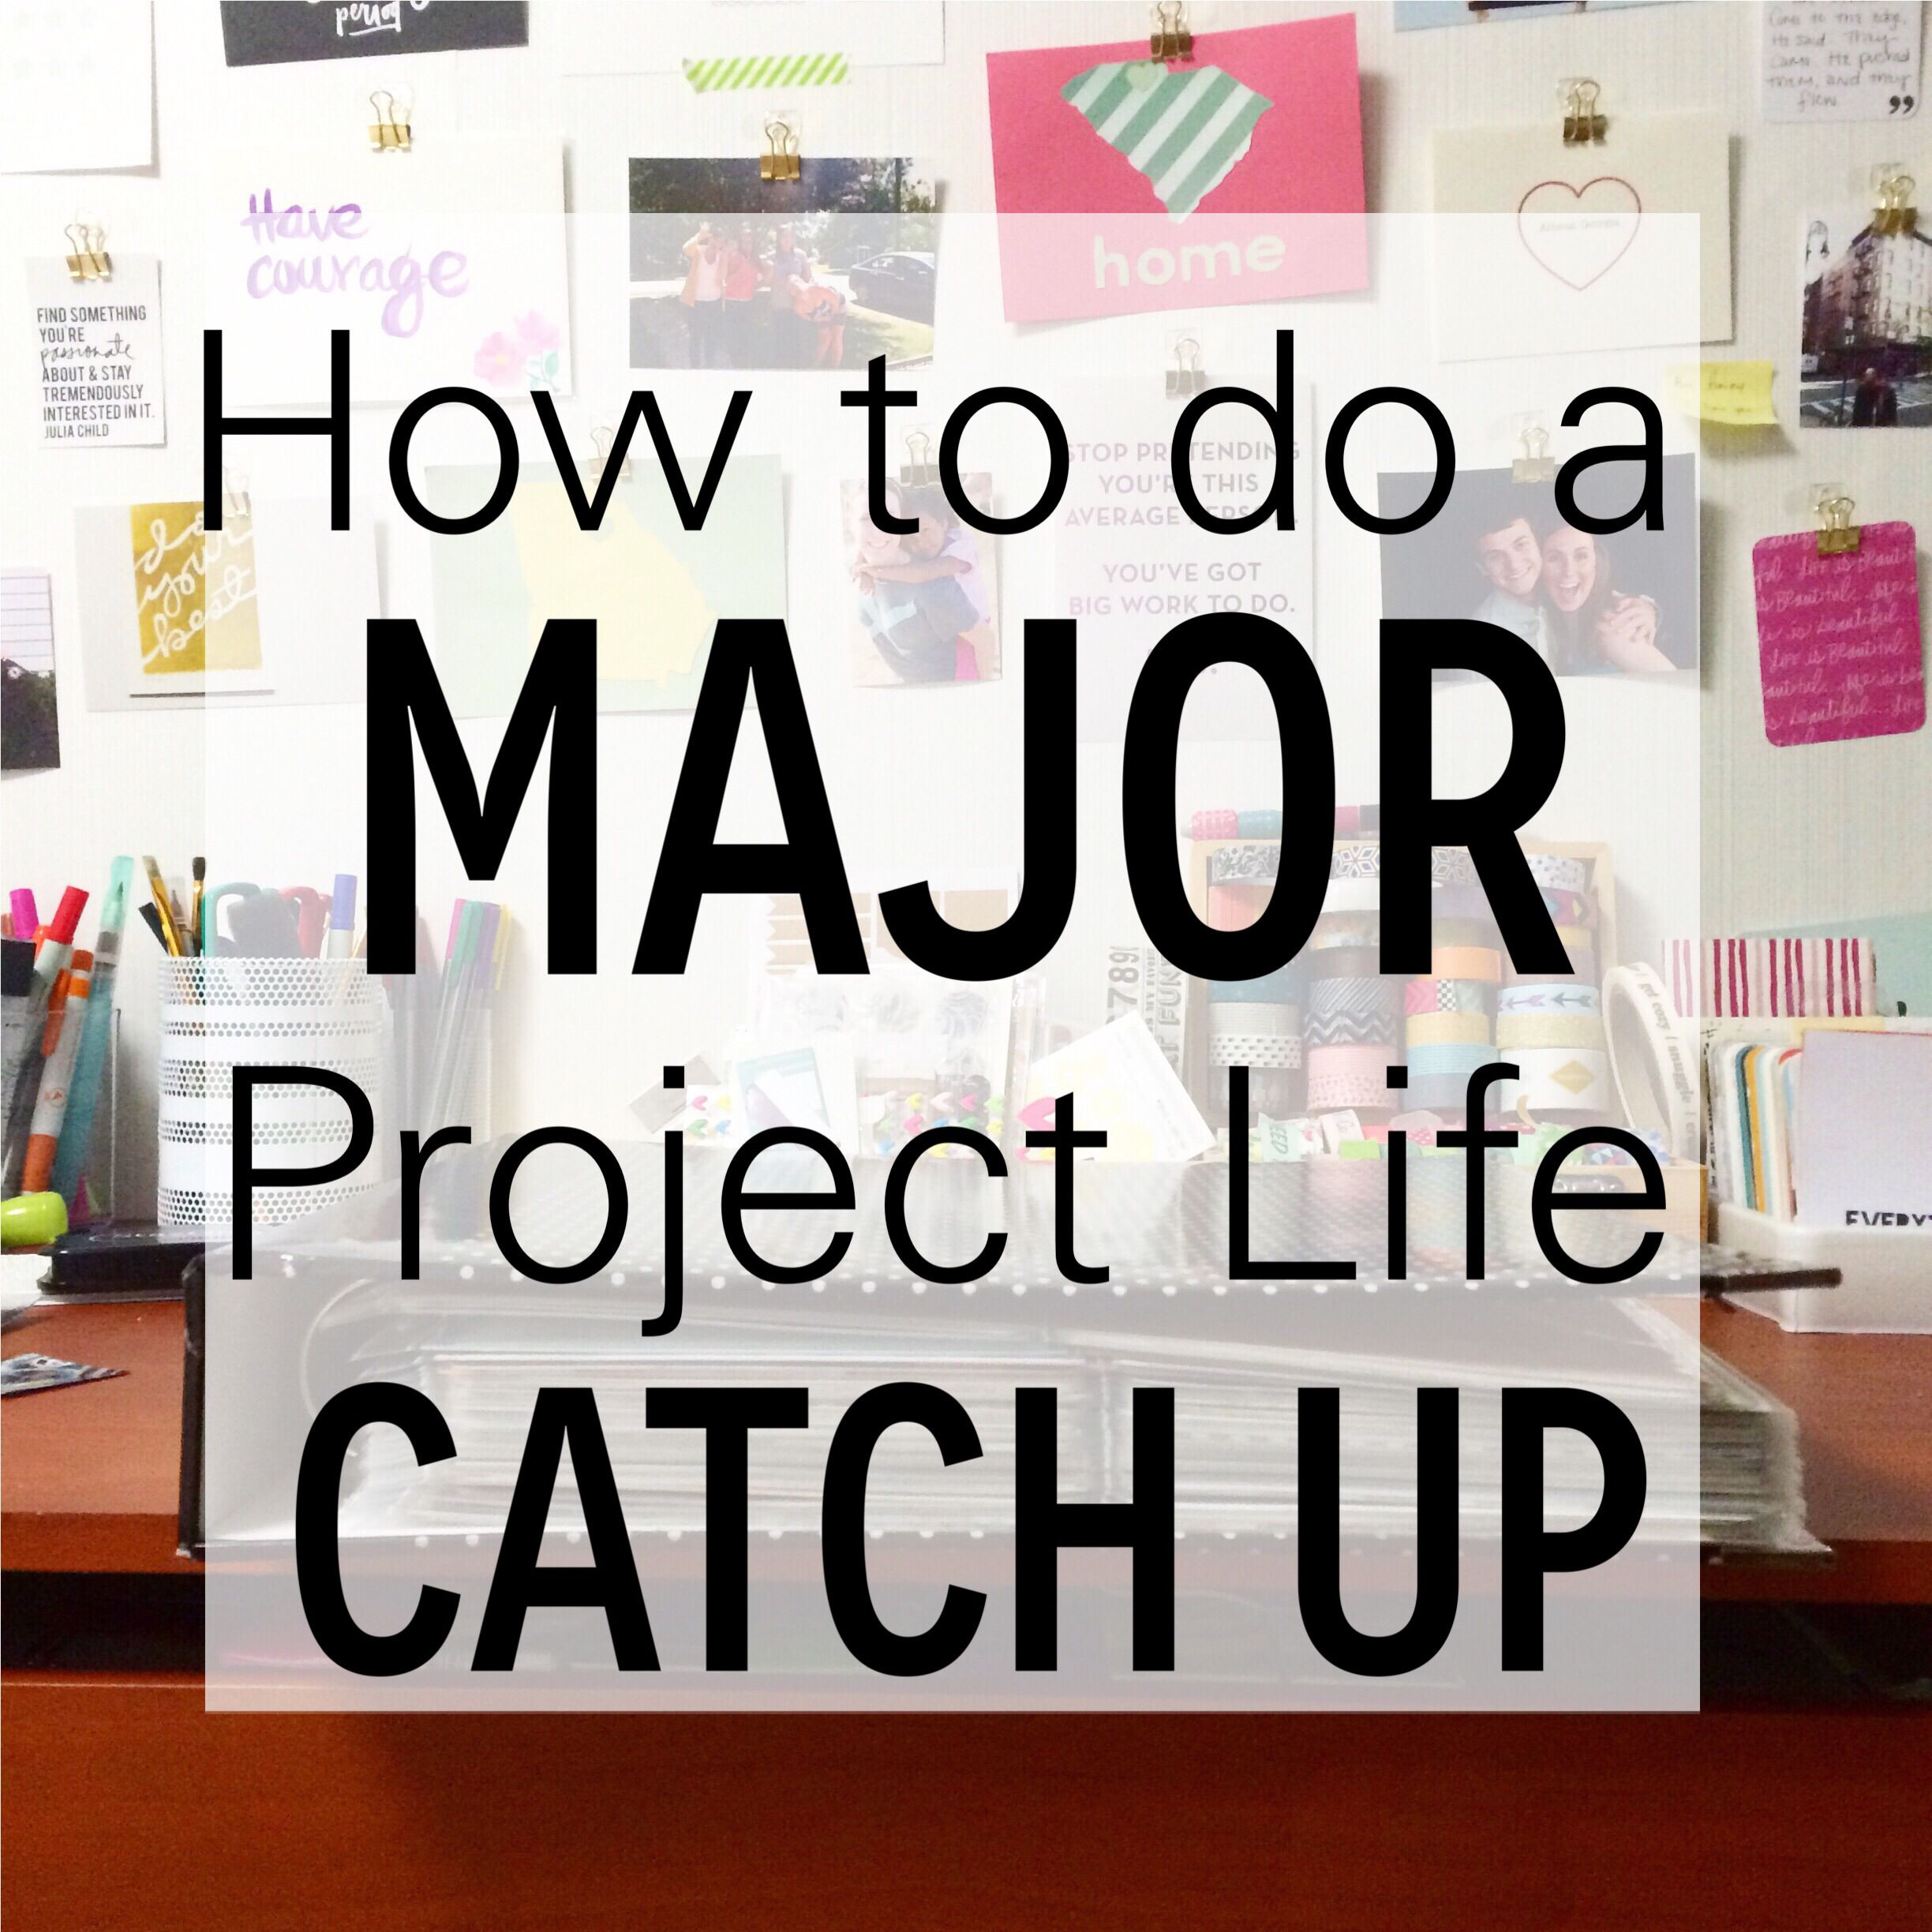 How to scrapbook with project life - How To Do A Major Project Life Catch Up By Lauren Likes